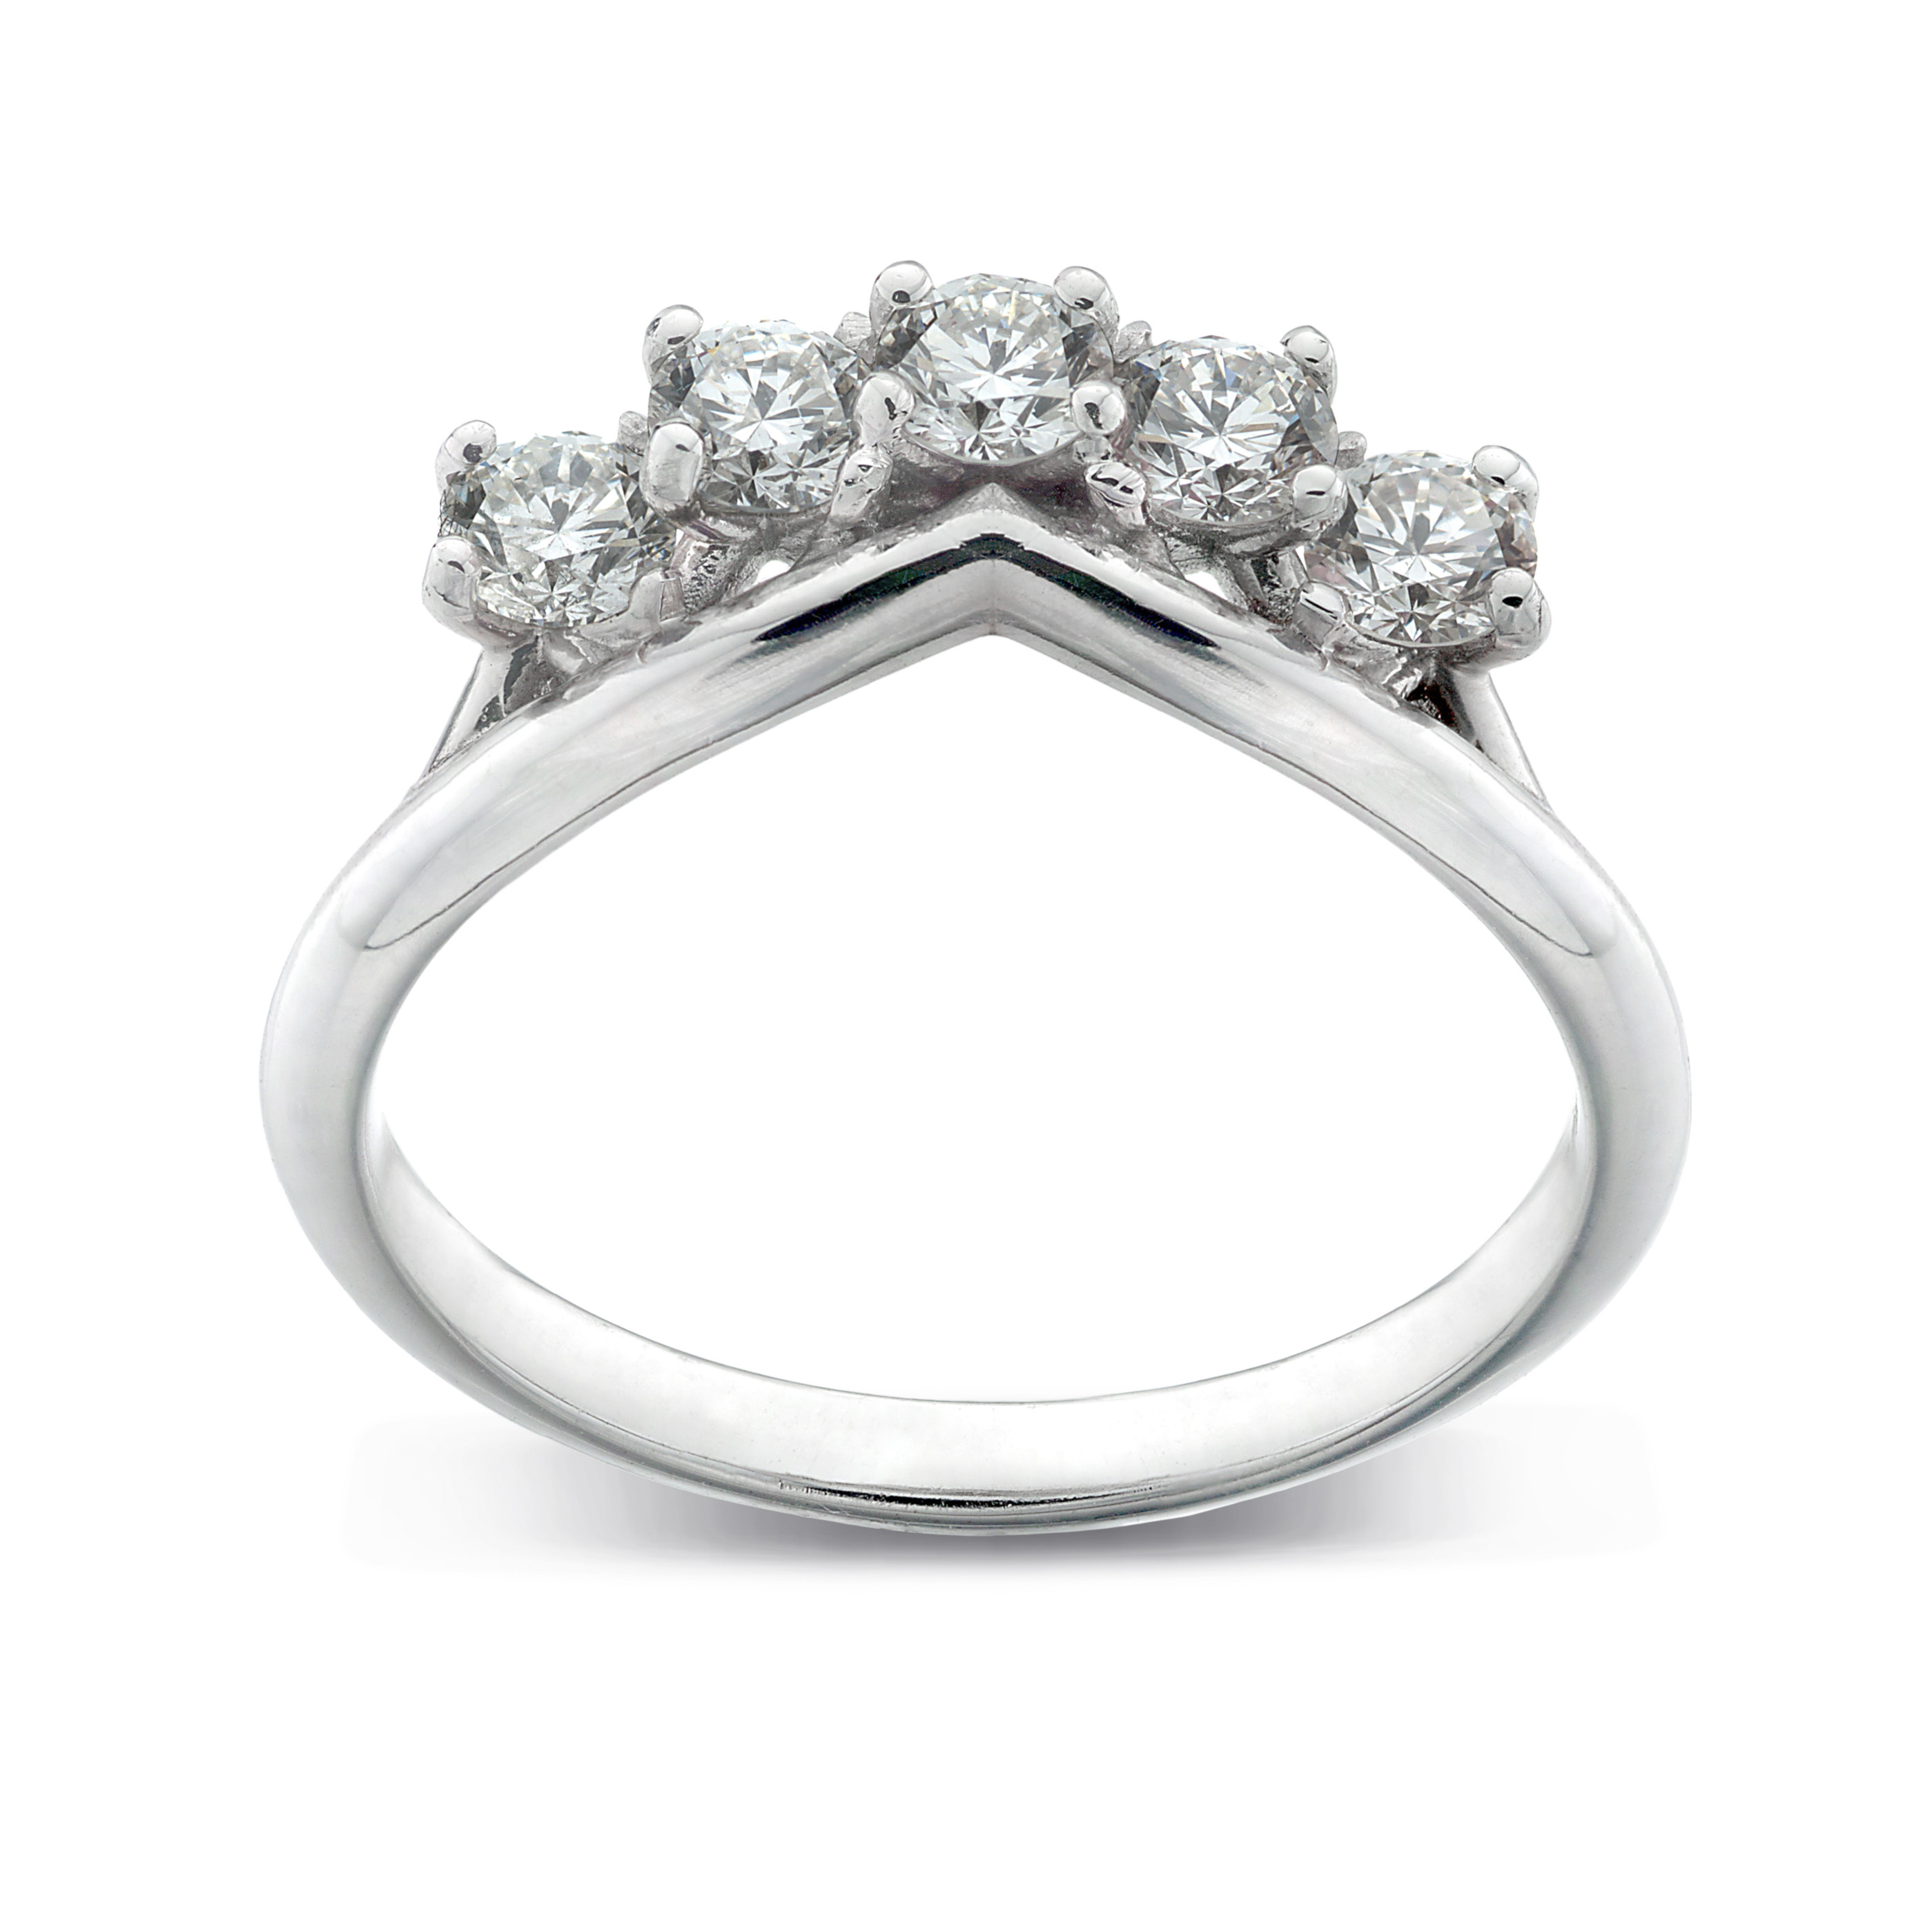 White Gold Diamond Ring With 'v Shaped' Curve In Fairtrade Gold With Regard To Newest V Shape Diamond Wedding Bands (View 24 of 25)